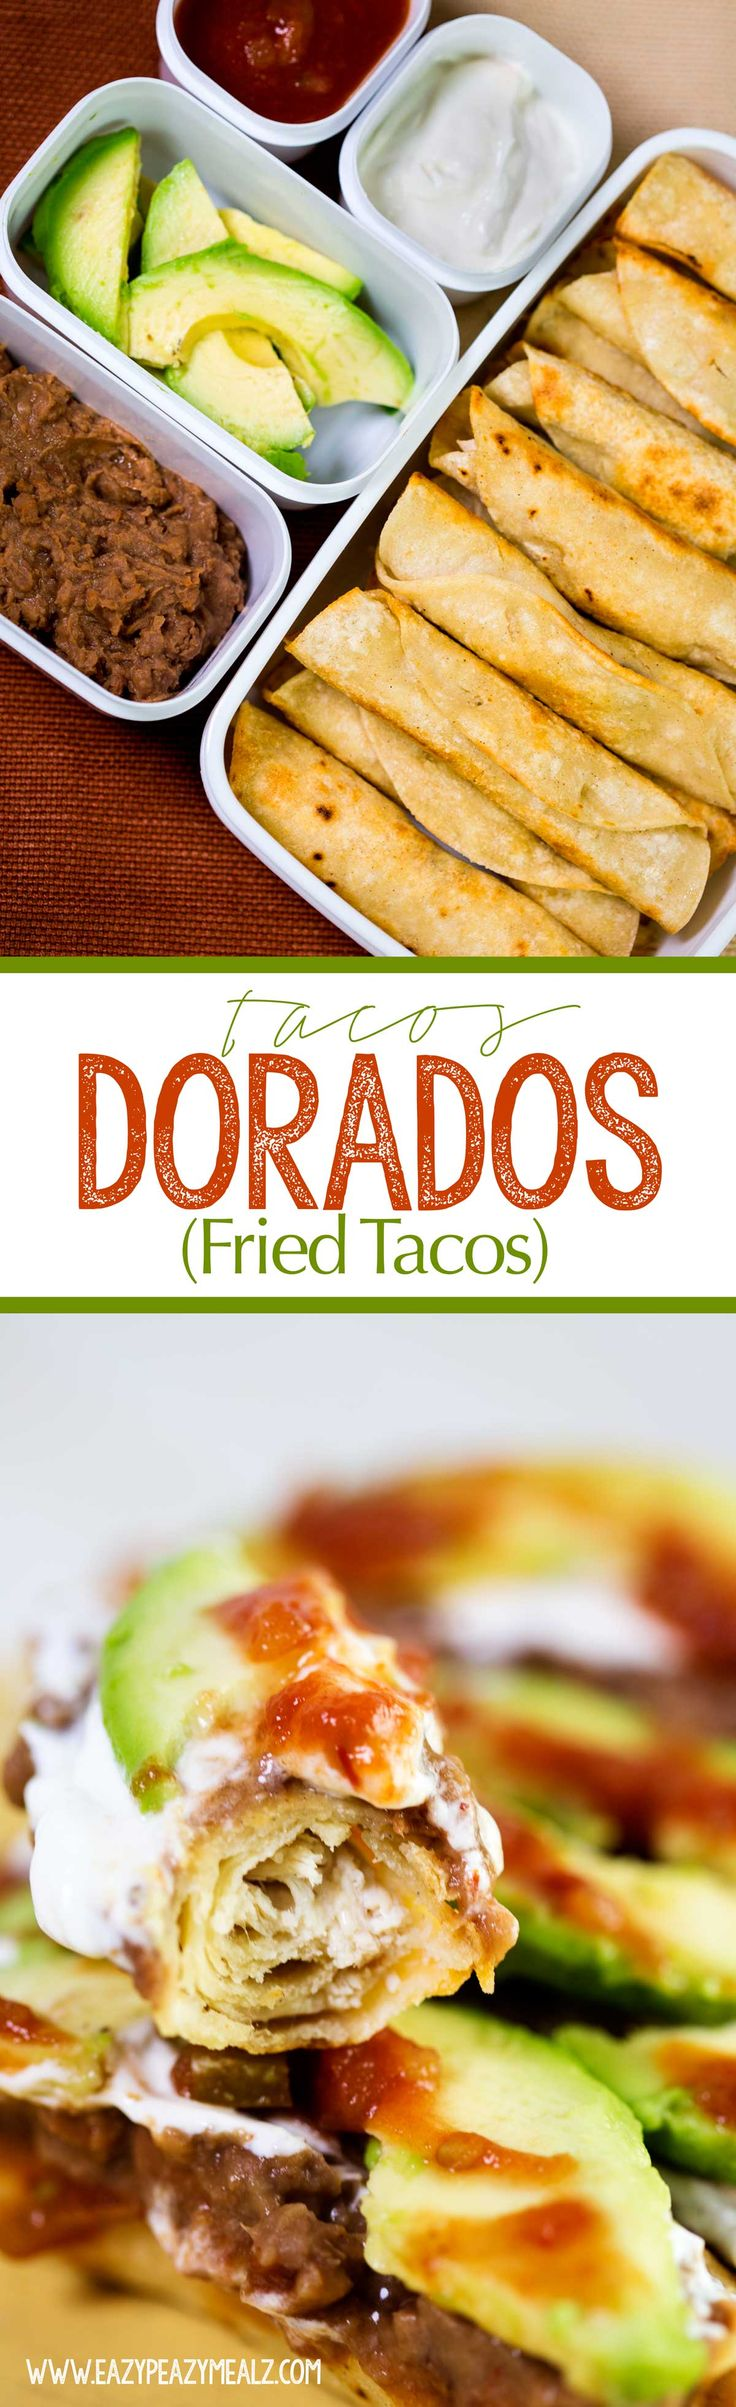 Tacos Dorados AKA fried tacos | Eazy Peazy Mealz | these fried tacos are stuffed with tender chicken and cheese and topped with all your favorites. A great lunch, dinner, or game day good.